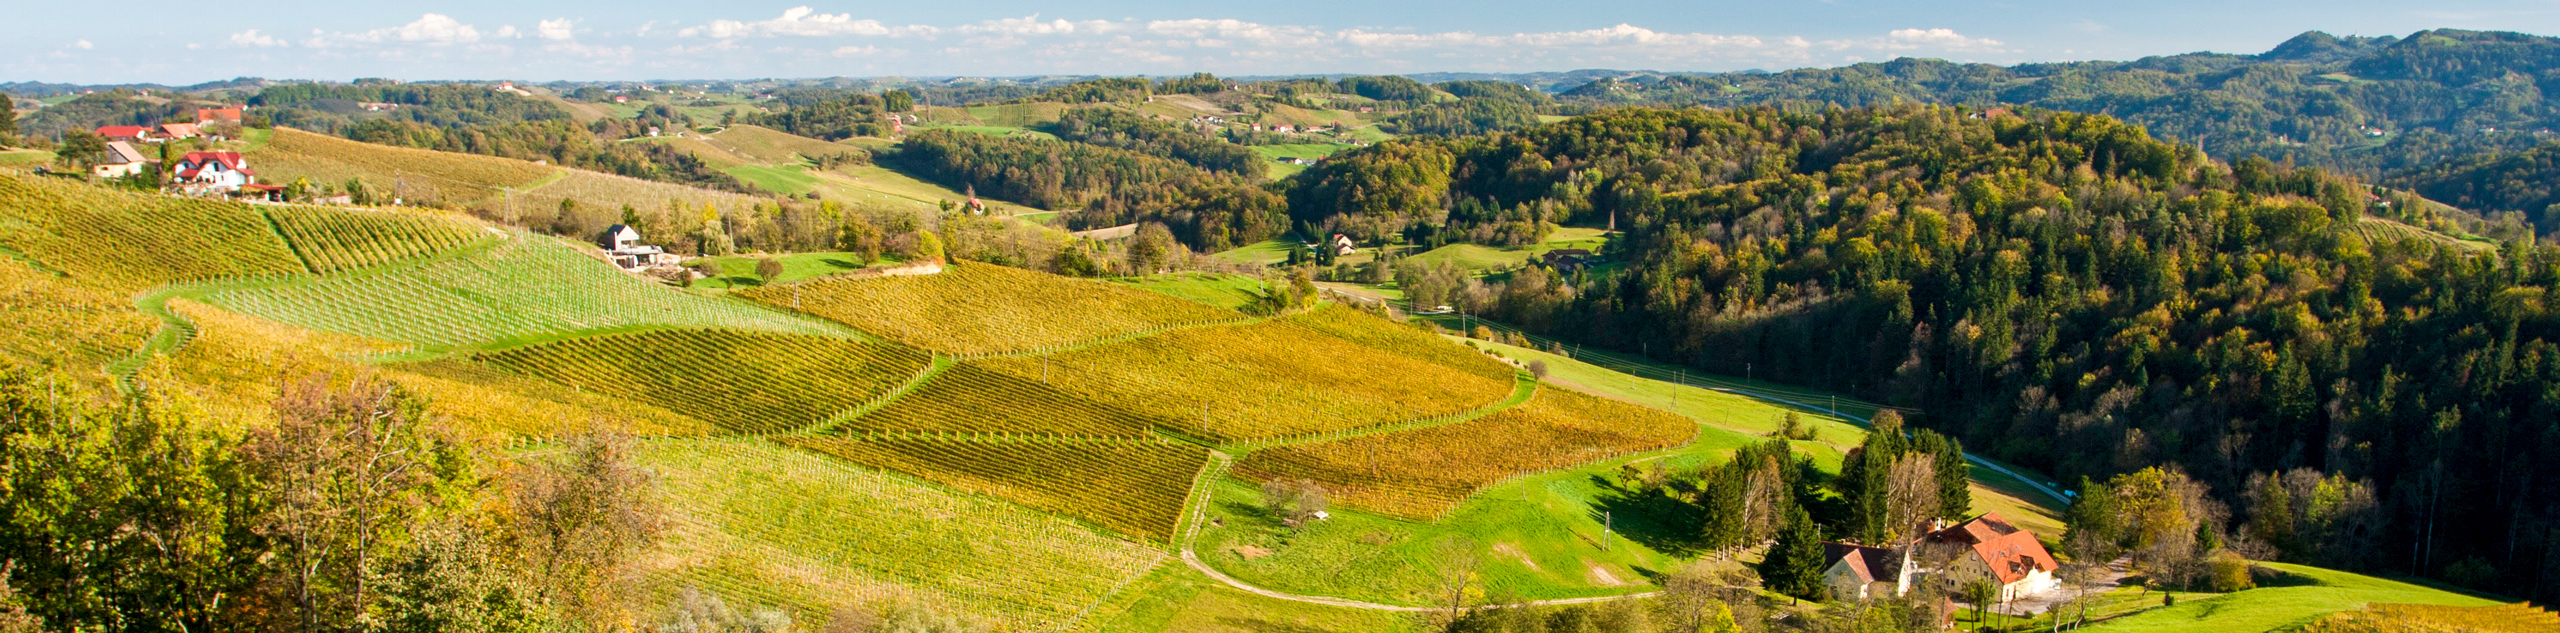 Walking the Vineyards, Caves, and Coasts of Slovenia